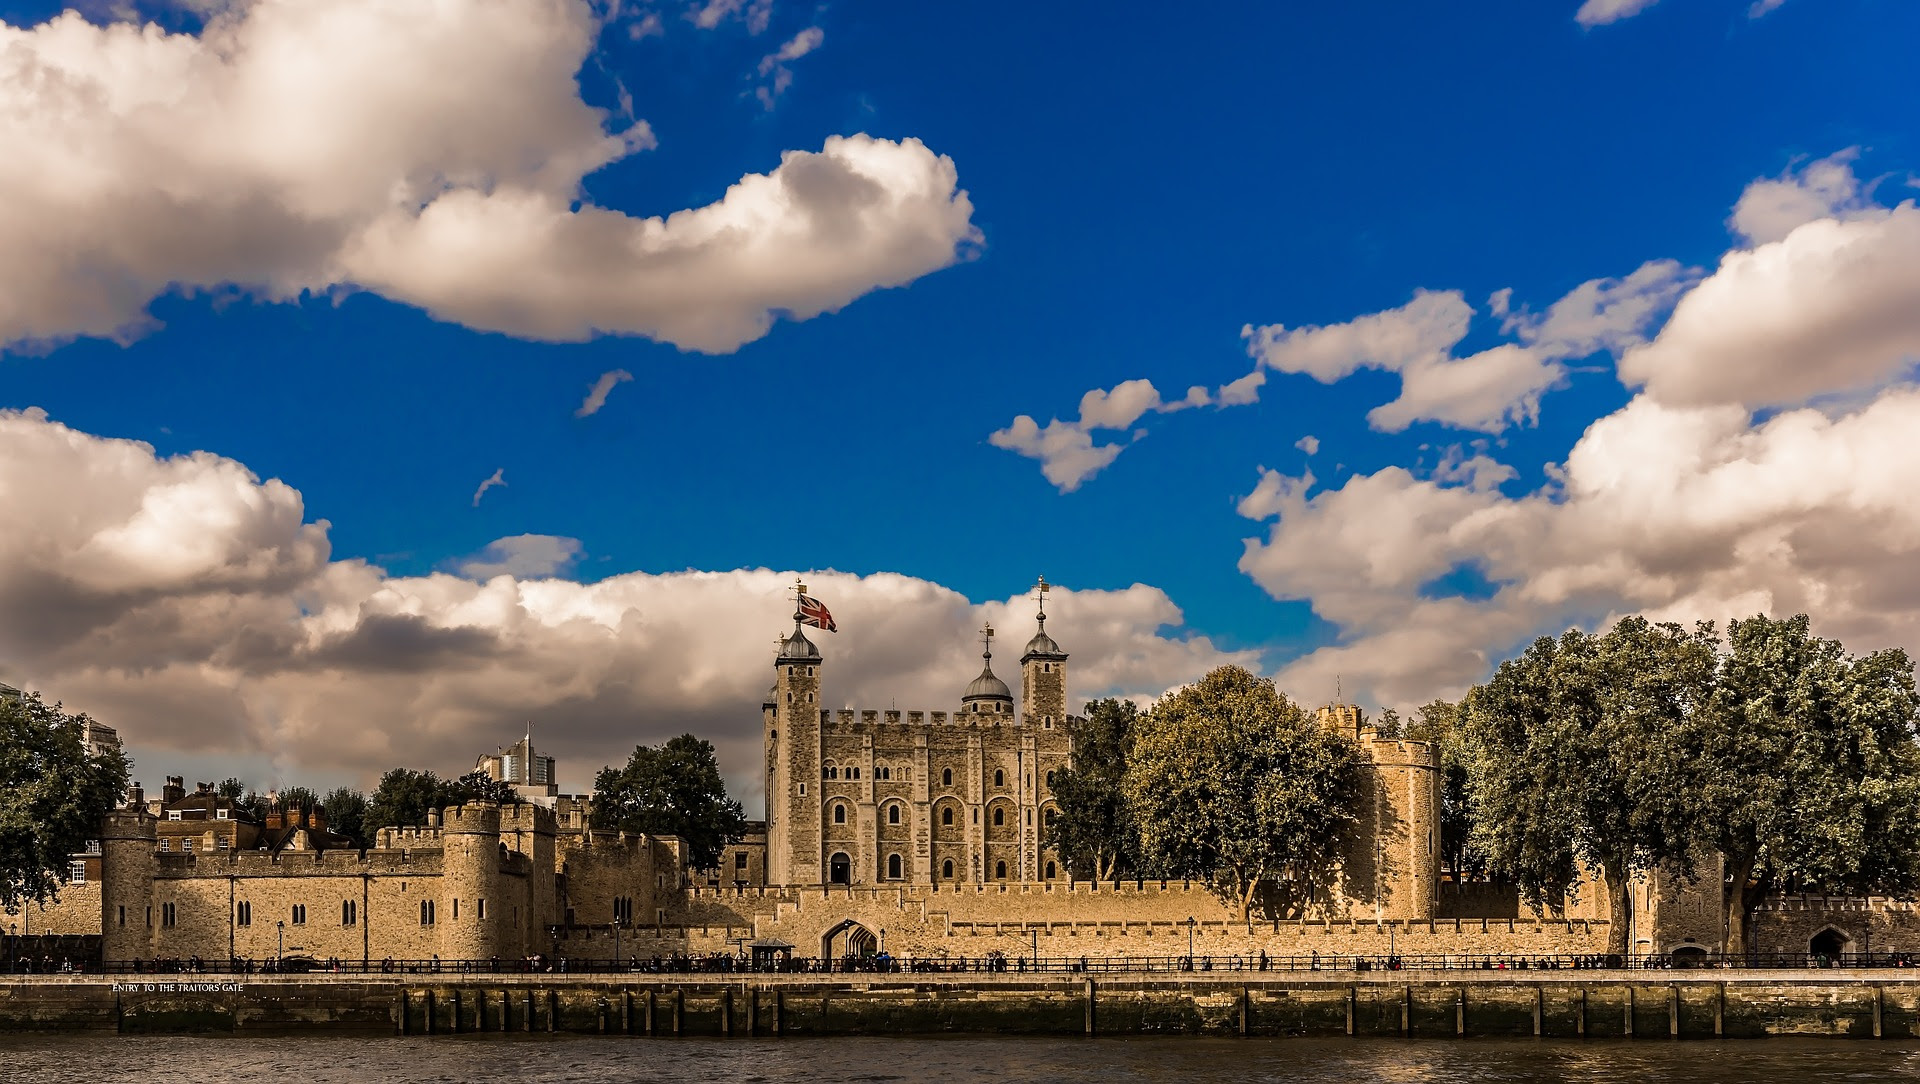 Tower of London, old Historic Castle of London